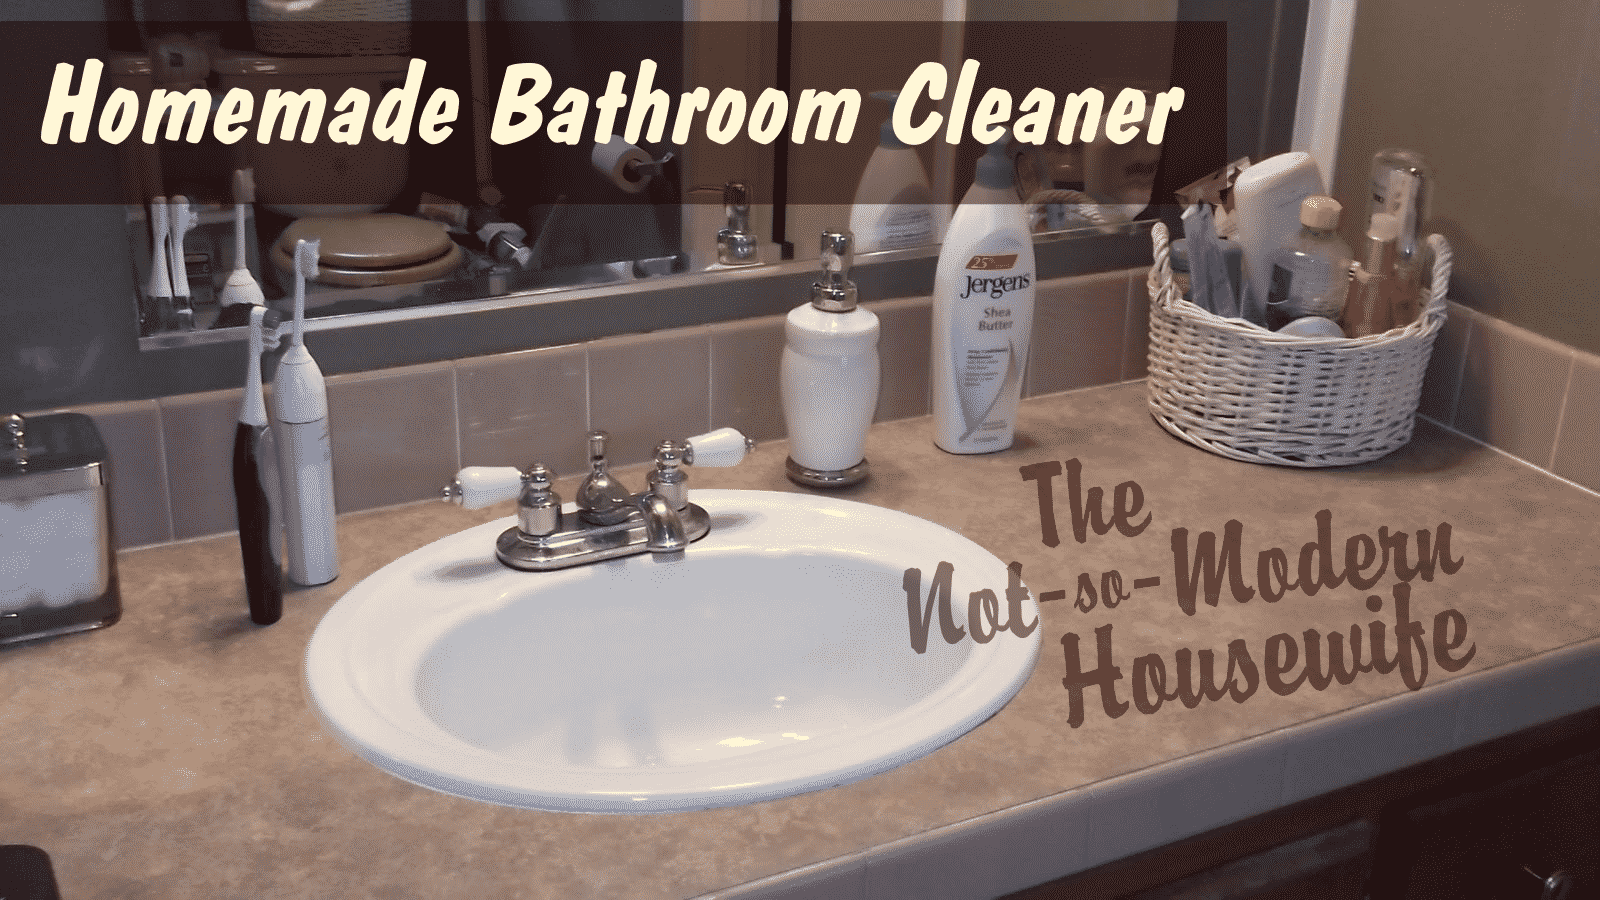 homemade bathroom cleaner tips for keeping your bathroom clean the not so modern housewife - Homemade Bathroom Cleaner